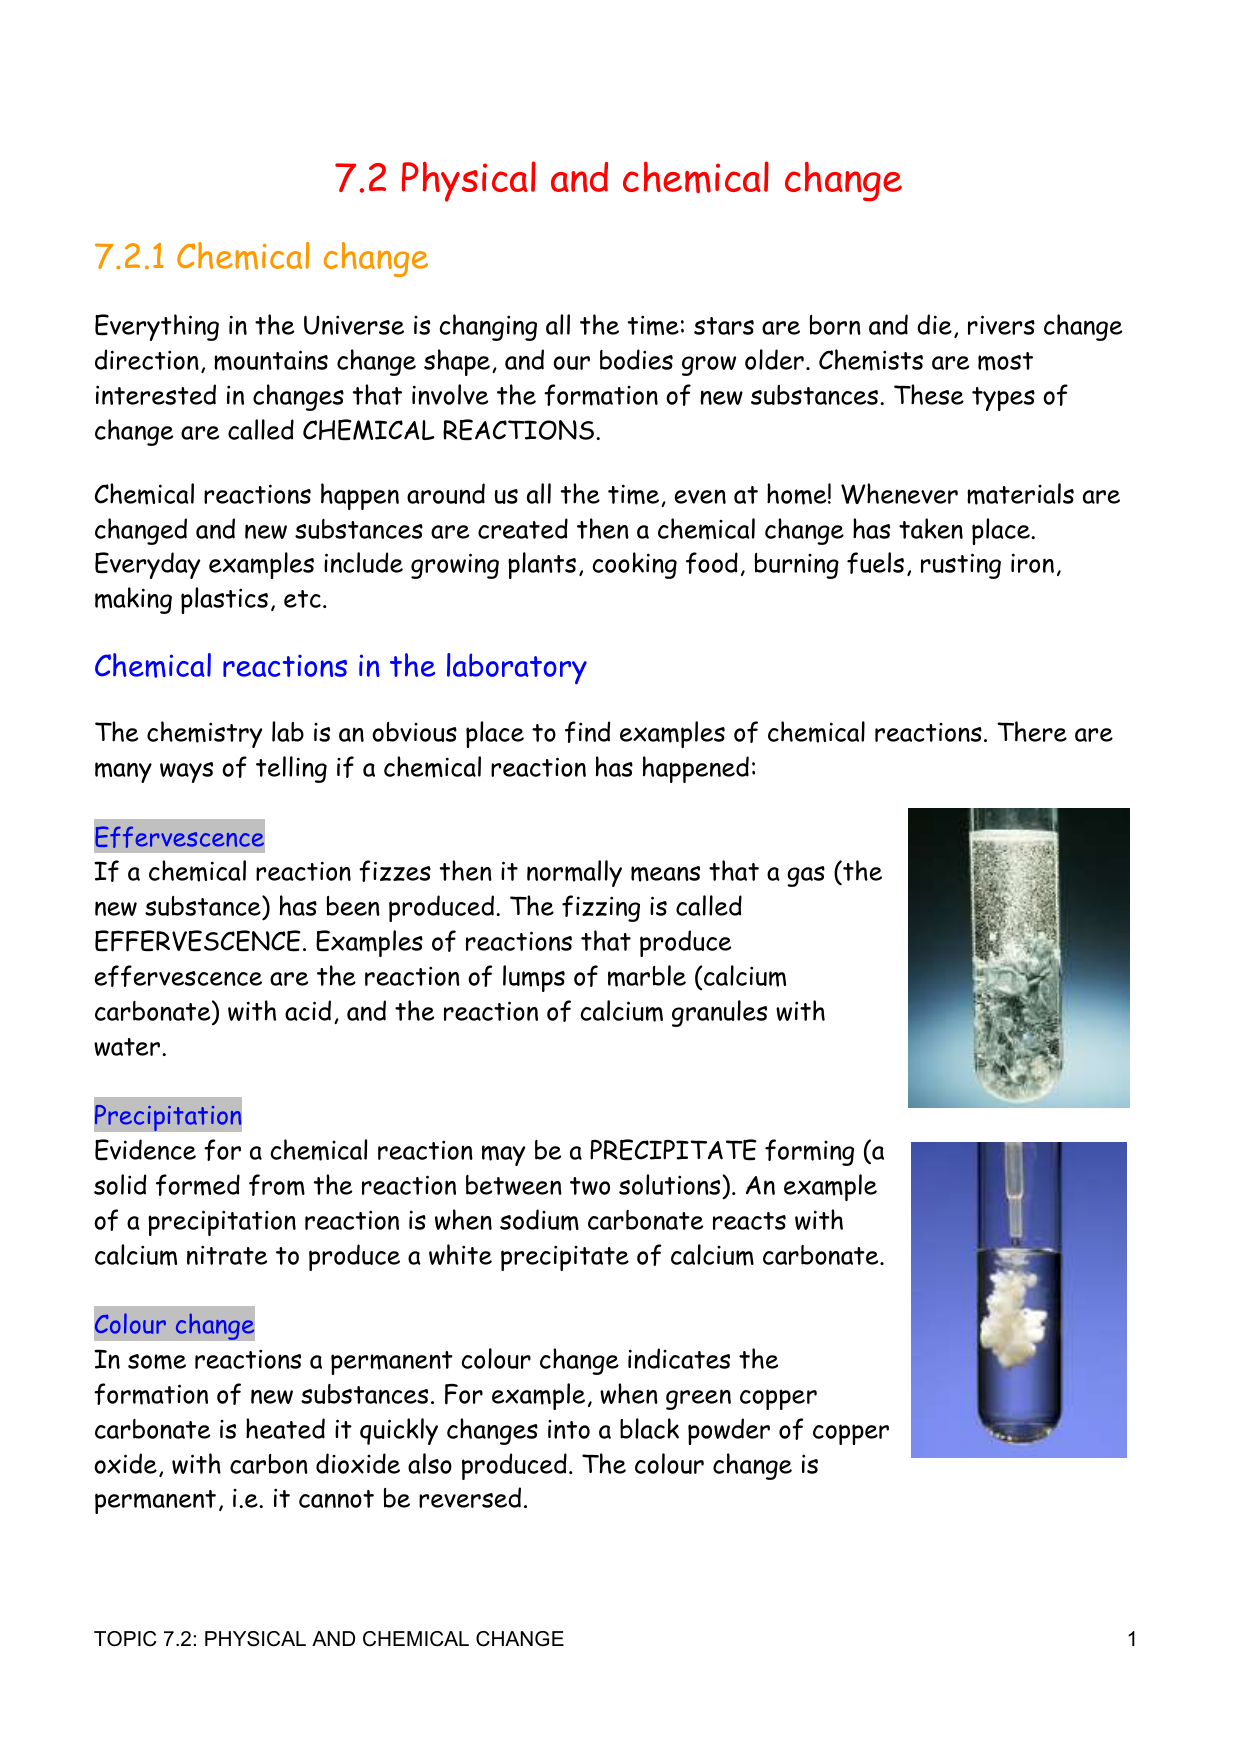 Physical and chemical reactions ppt download.